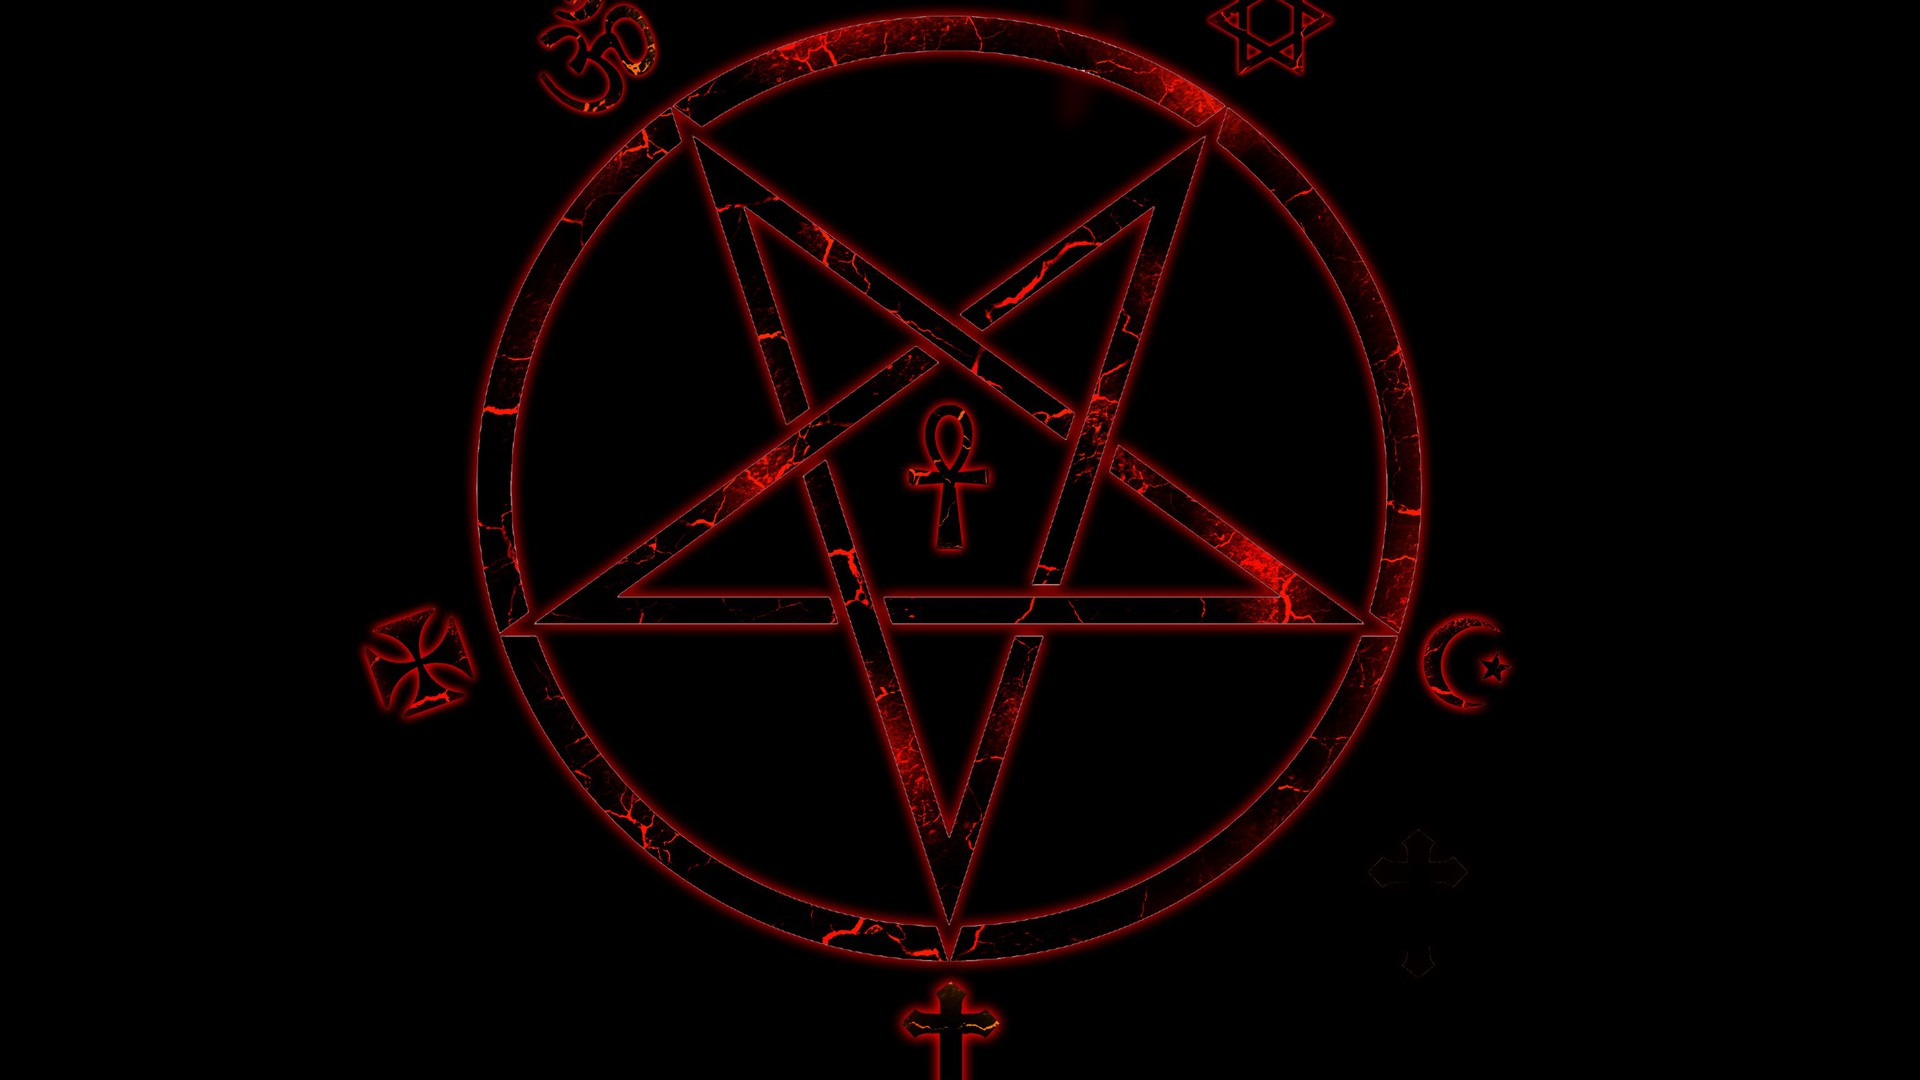 Satanic Iphone Wallpaper Pentagram Wallpaper Allwallpaper In 8628 Pc En